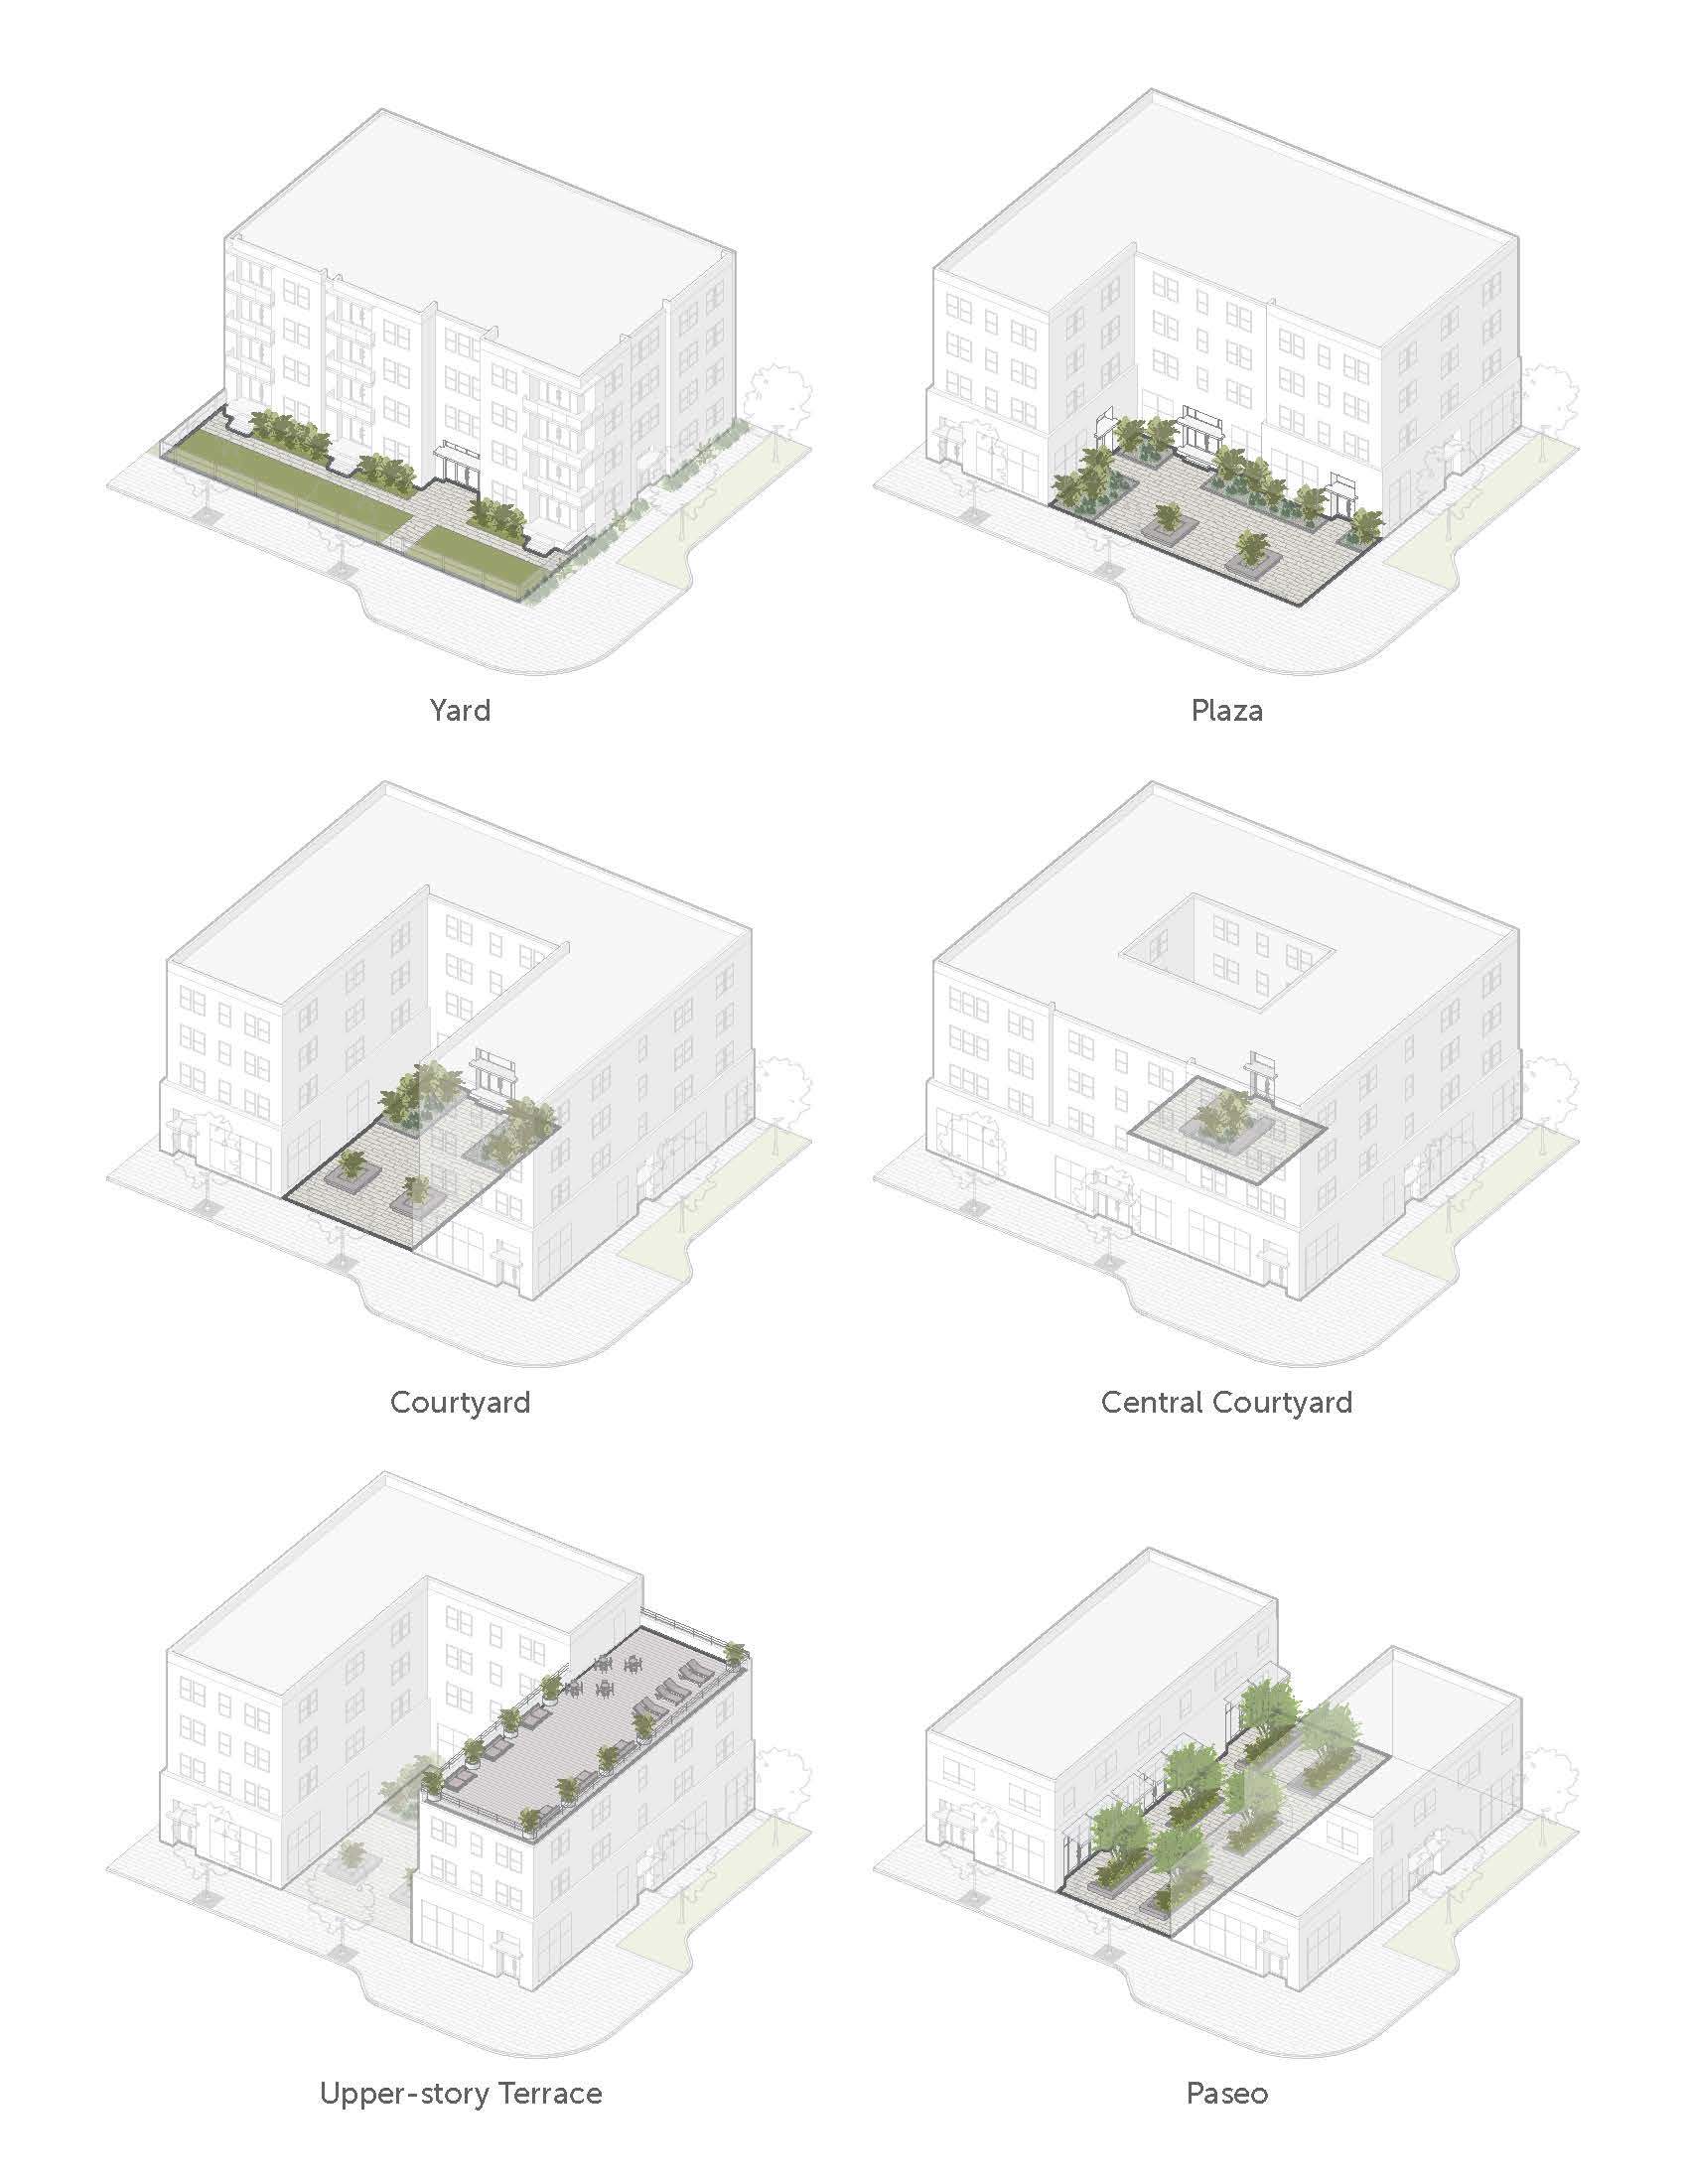 examples of new green spaces with new buildings, via Code Studio